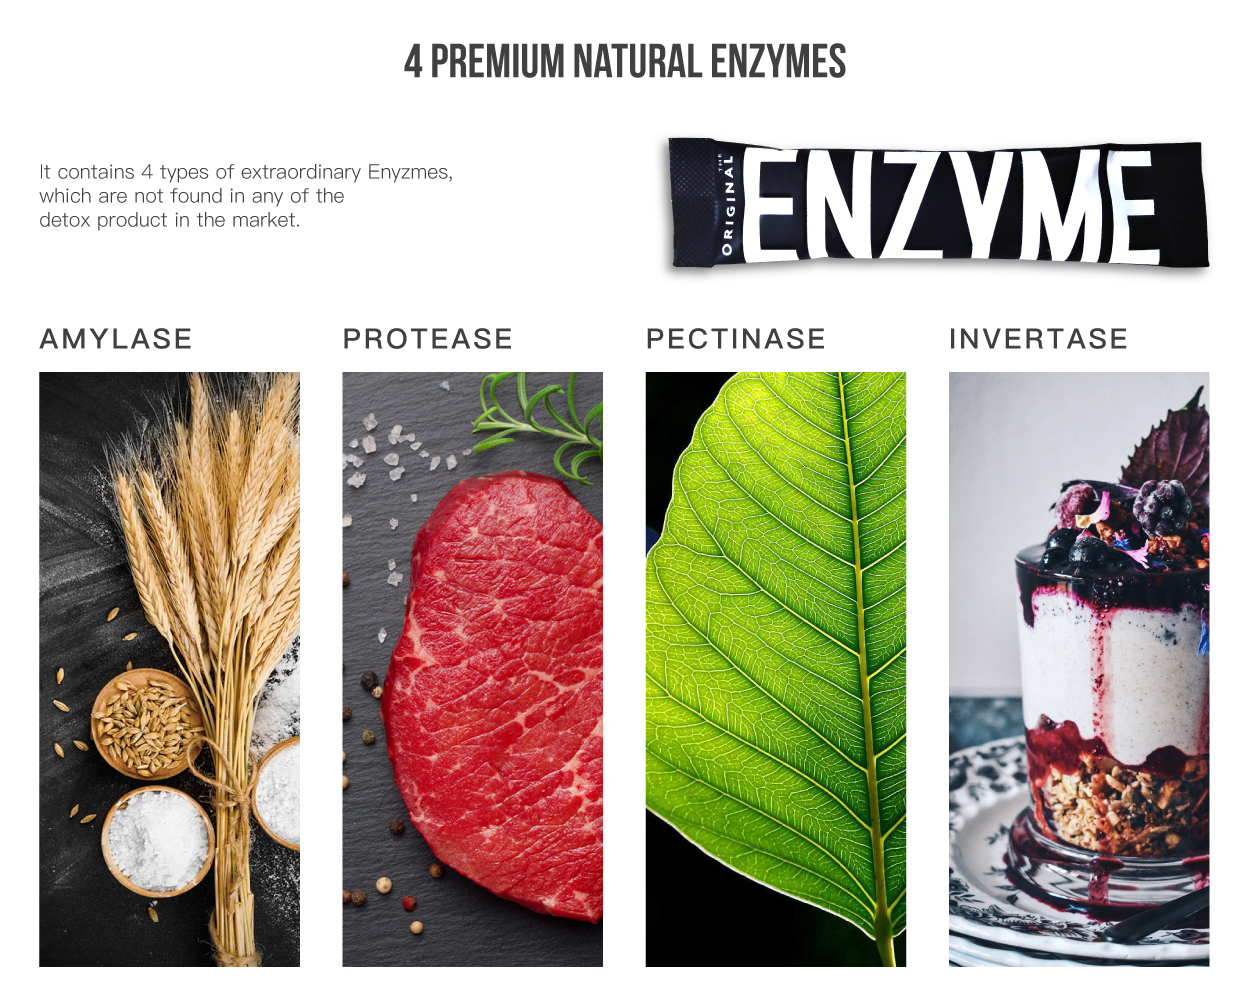 The Original Enzyme 4-premium4